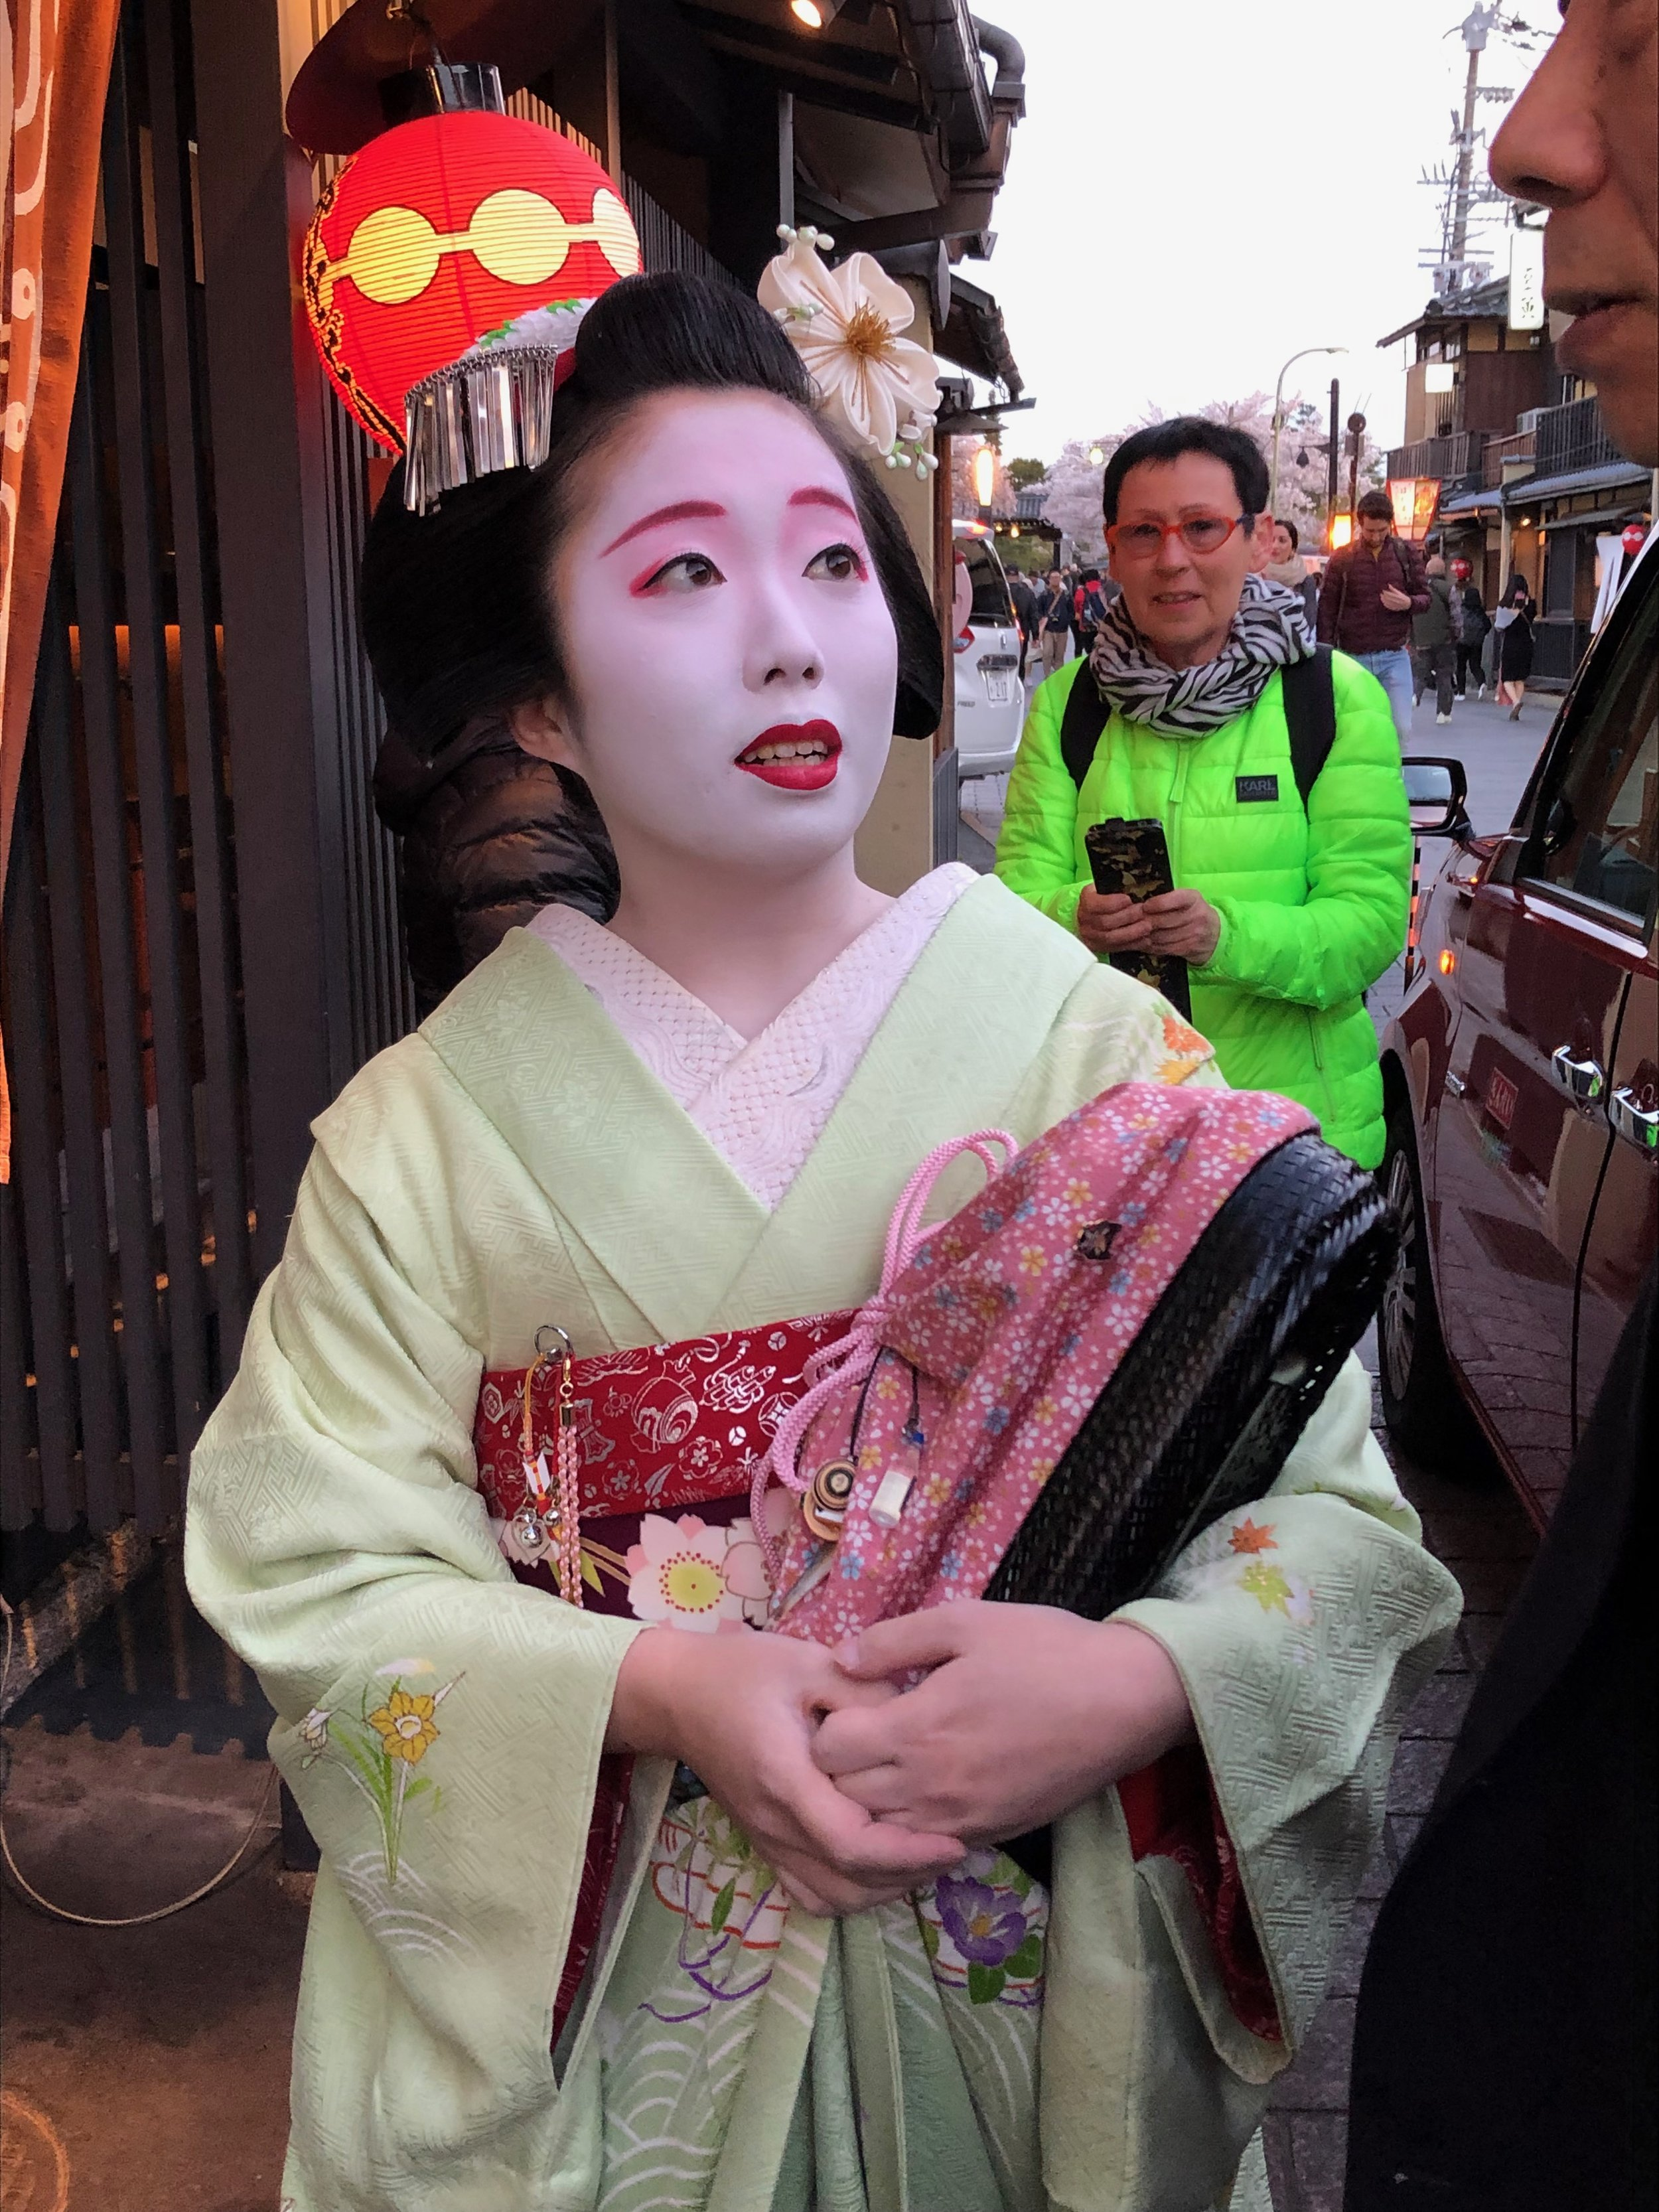 Distressed geisha surrounded by dozens of tourists snapping photos, seeks refuge in a limousine.